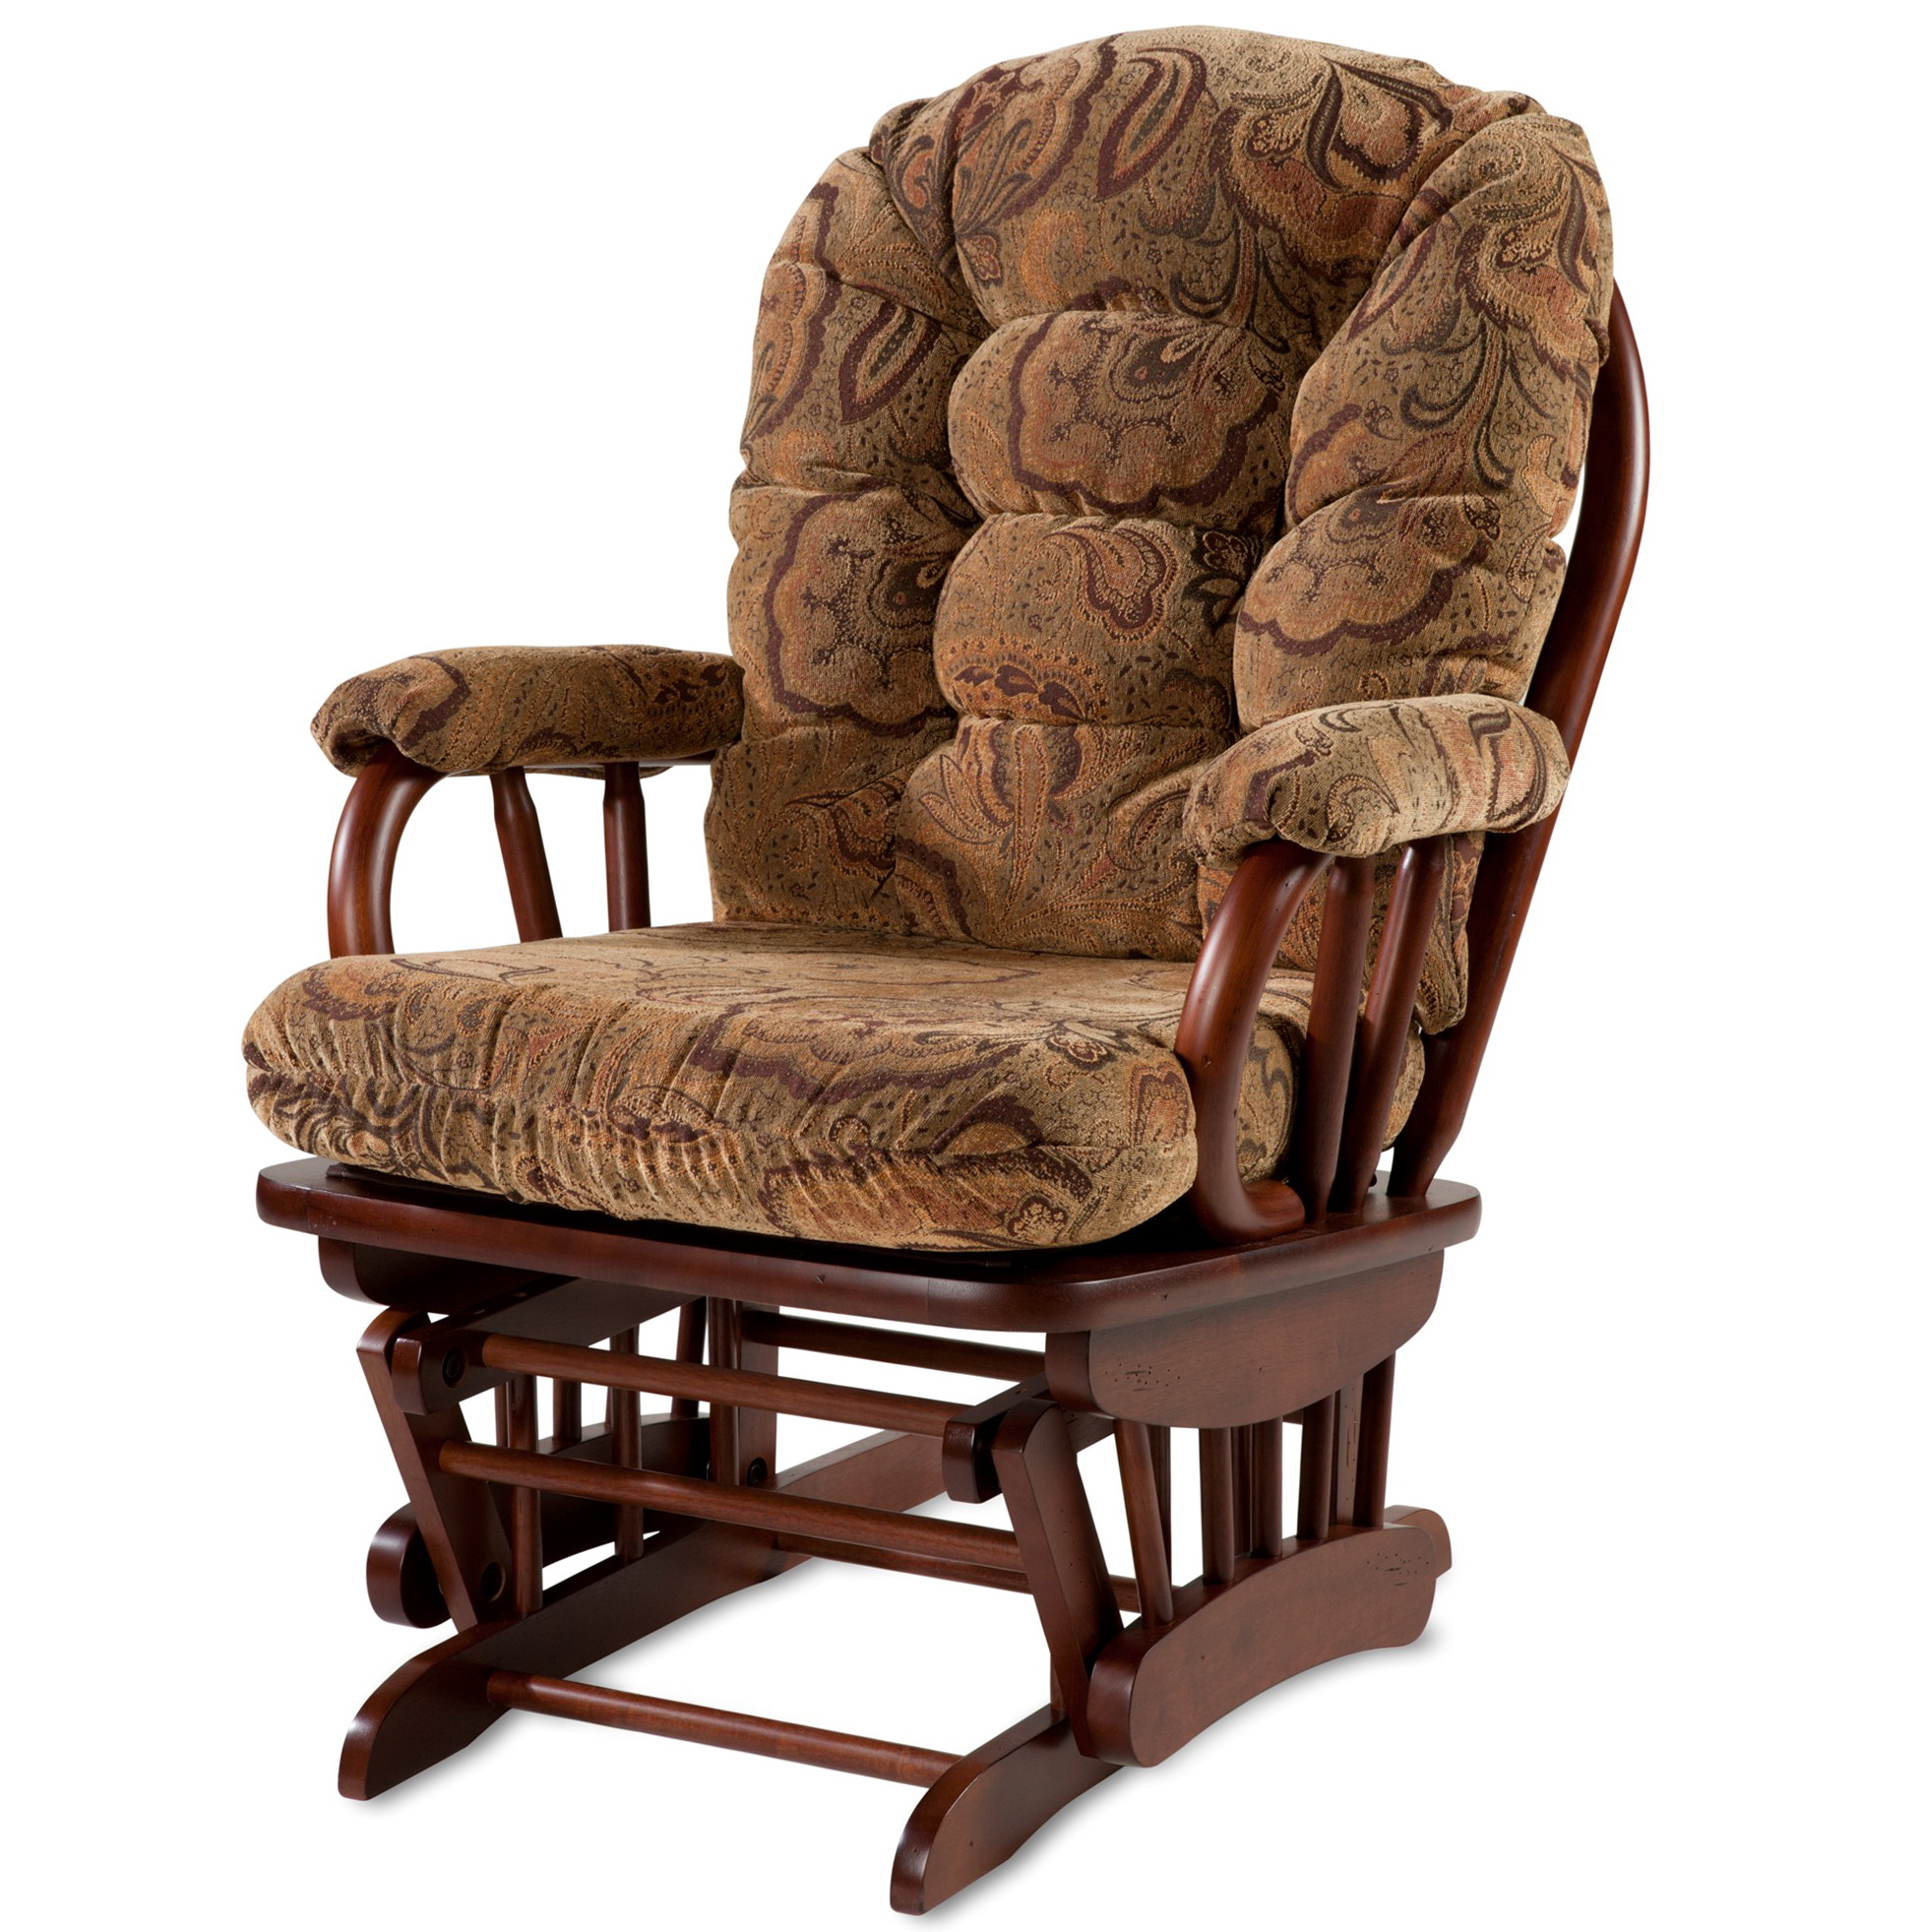 wooden rocking chair cushion set slip covers for dining chairs with cushions